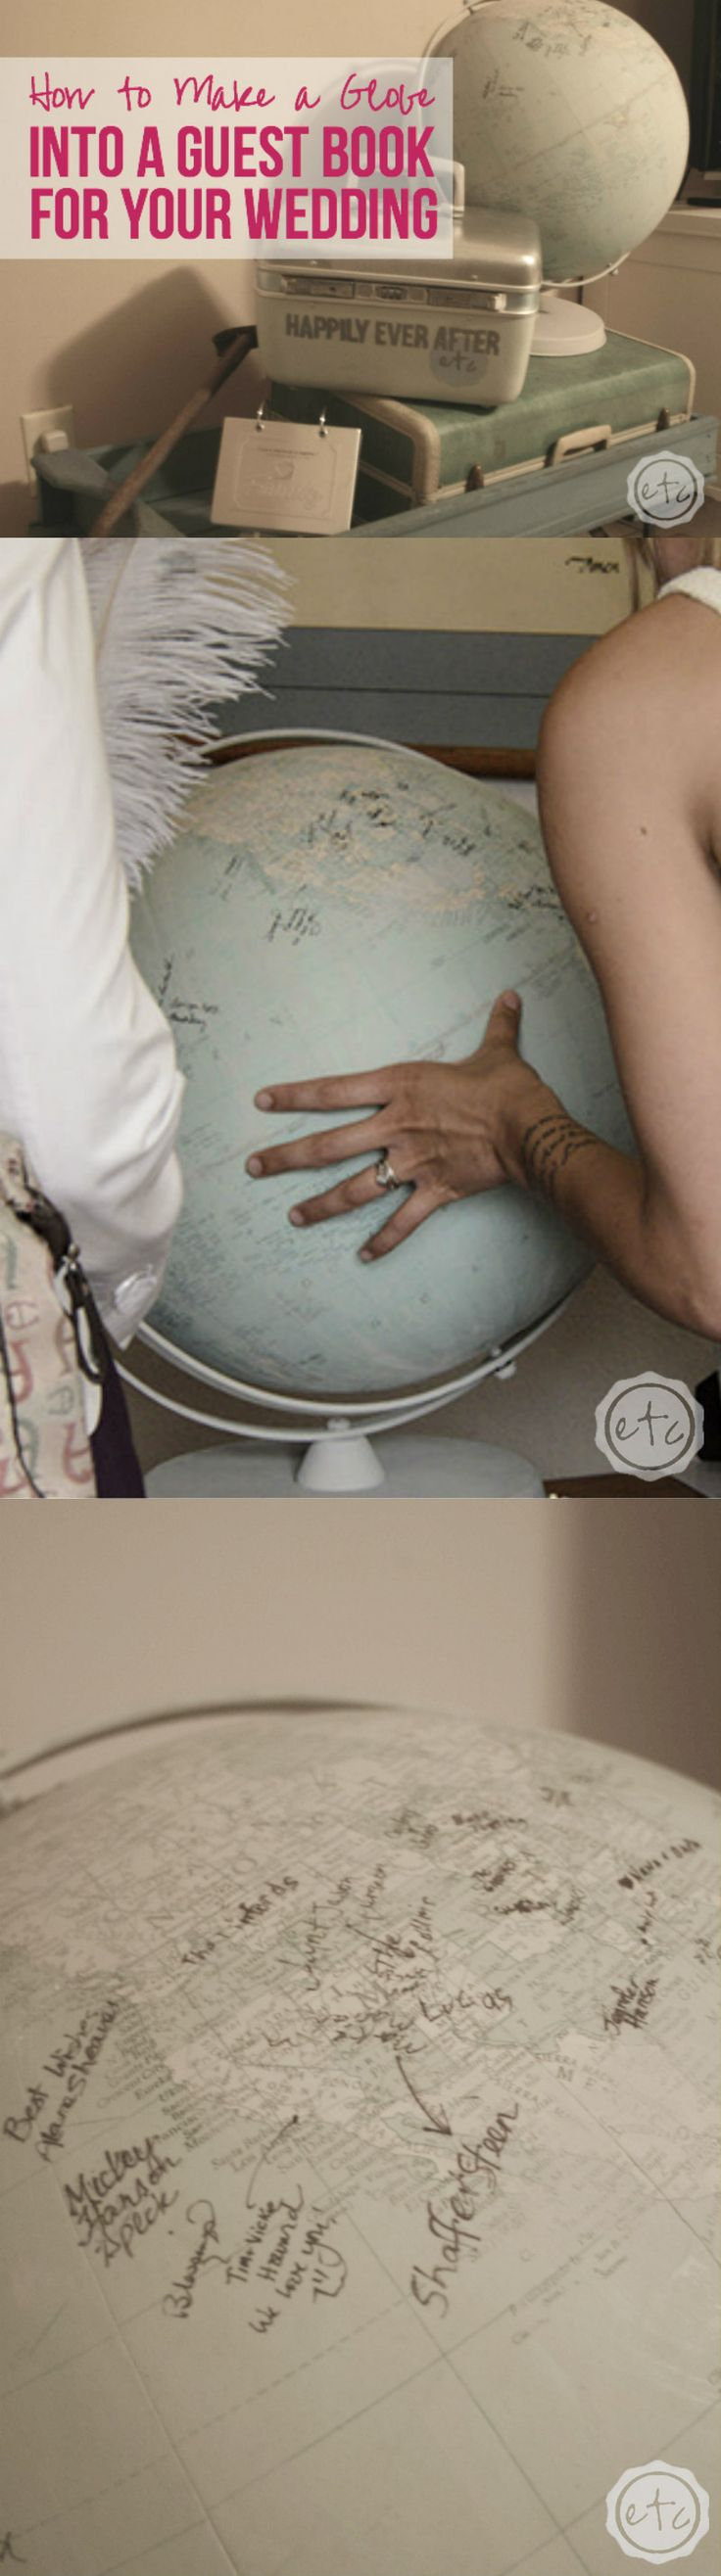 How to Turn a Globe into a Guest Book for your Wedding with Happily Ever After, Etc.